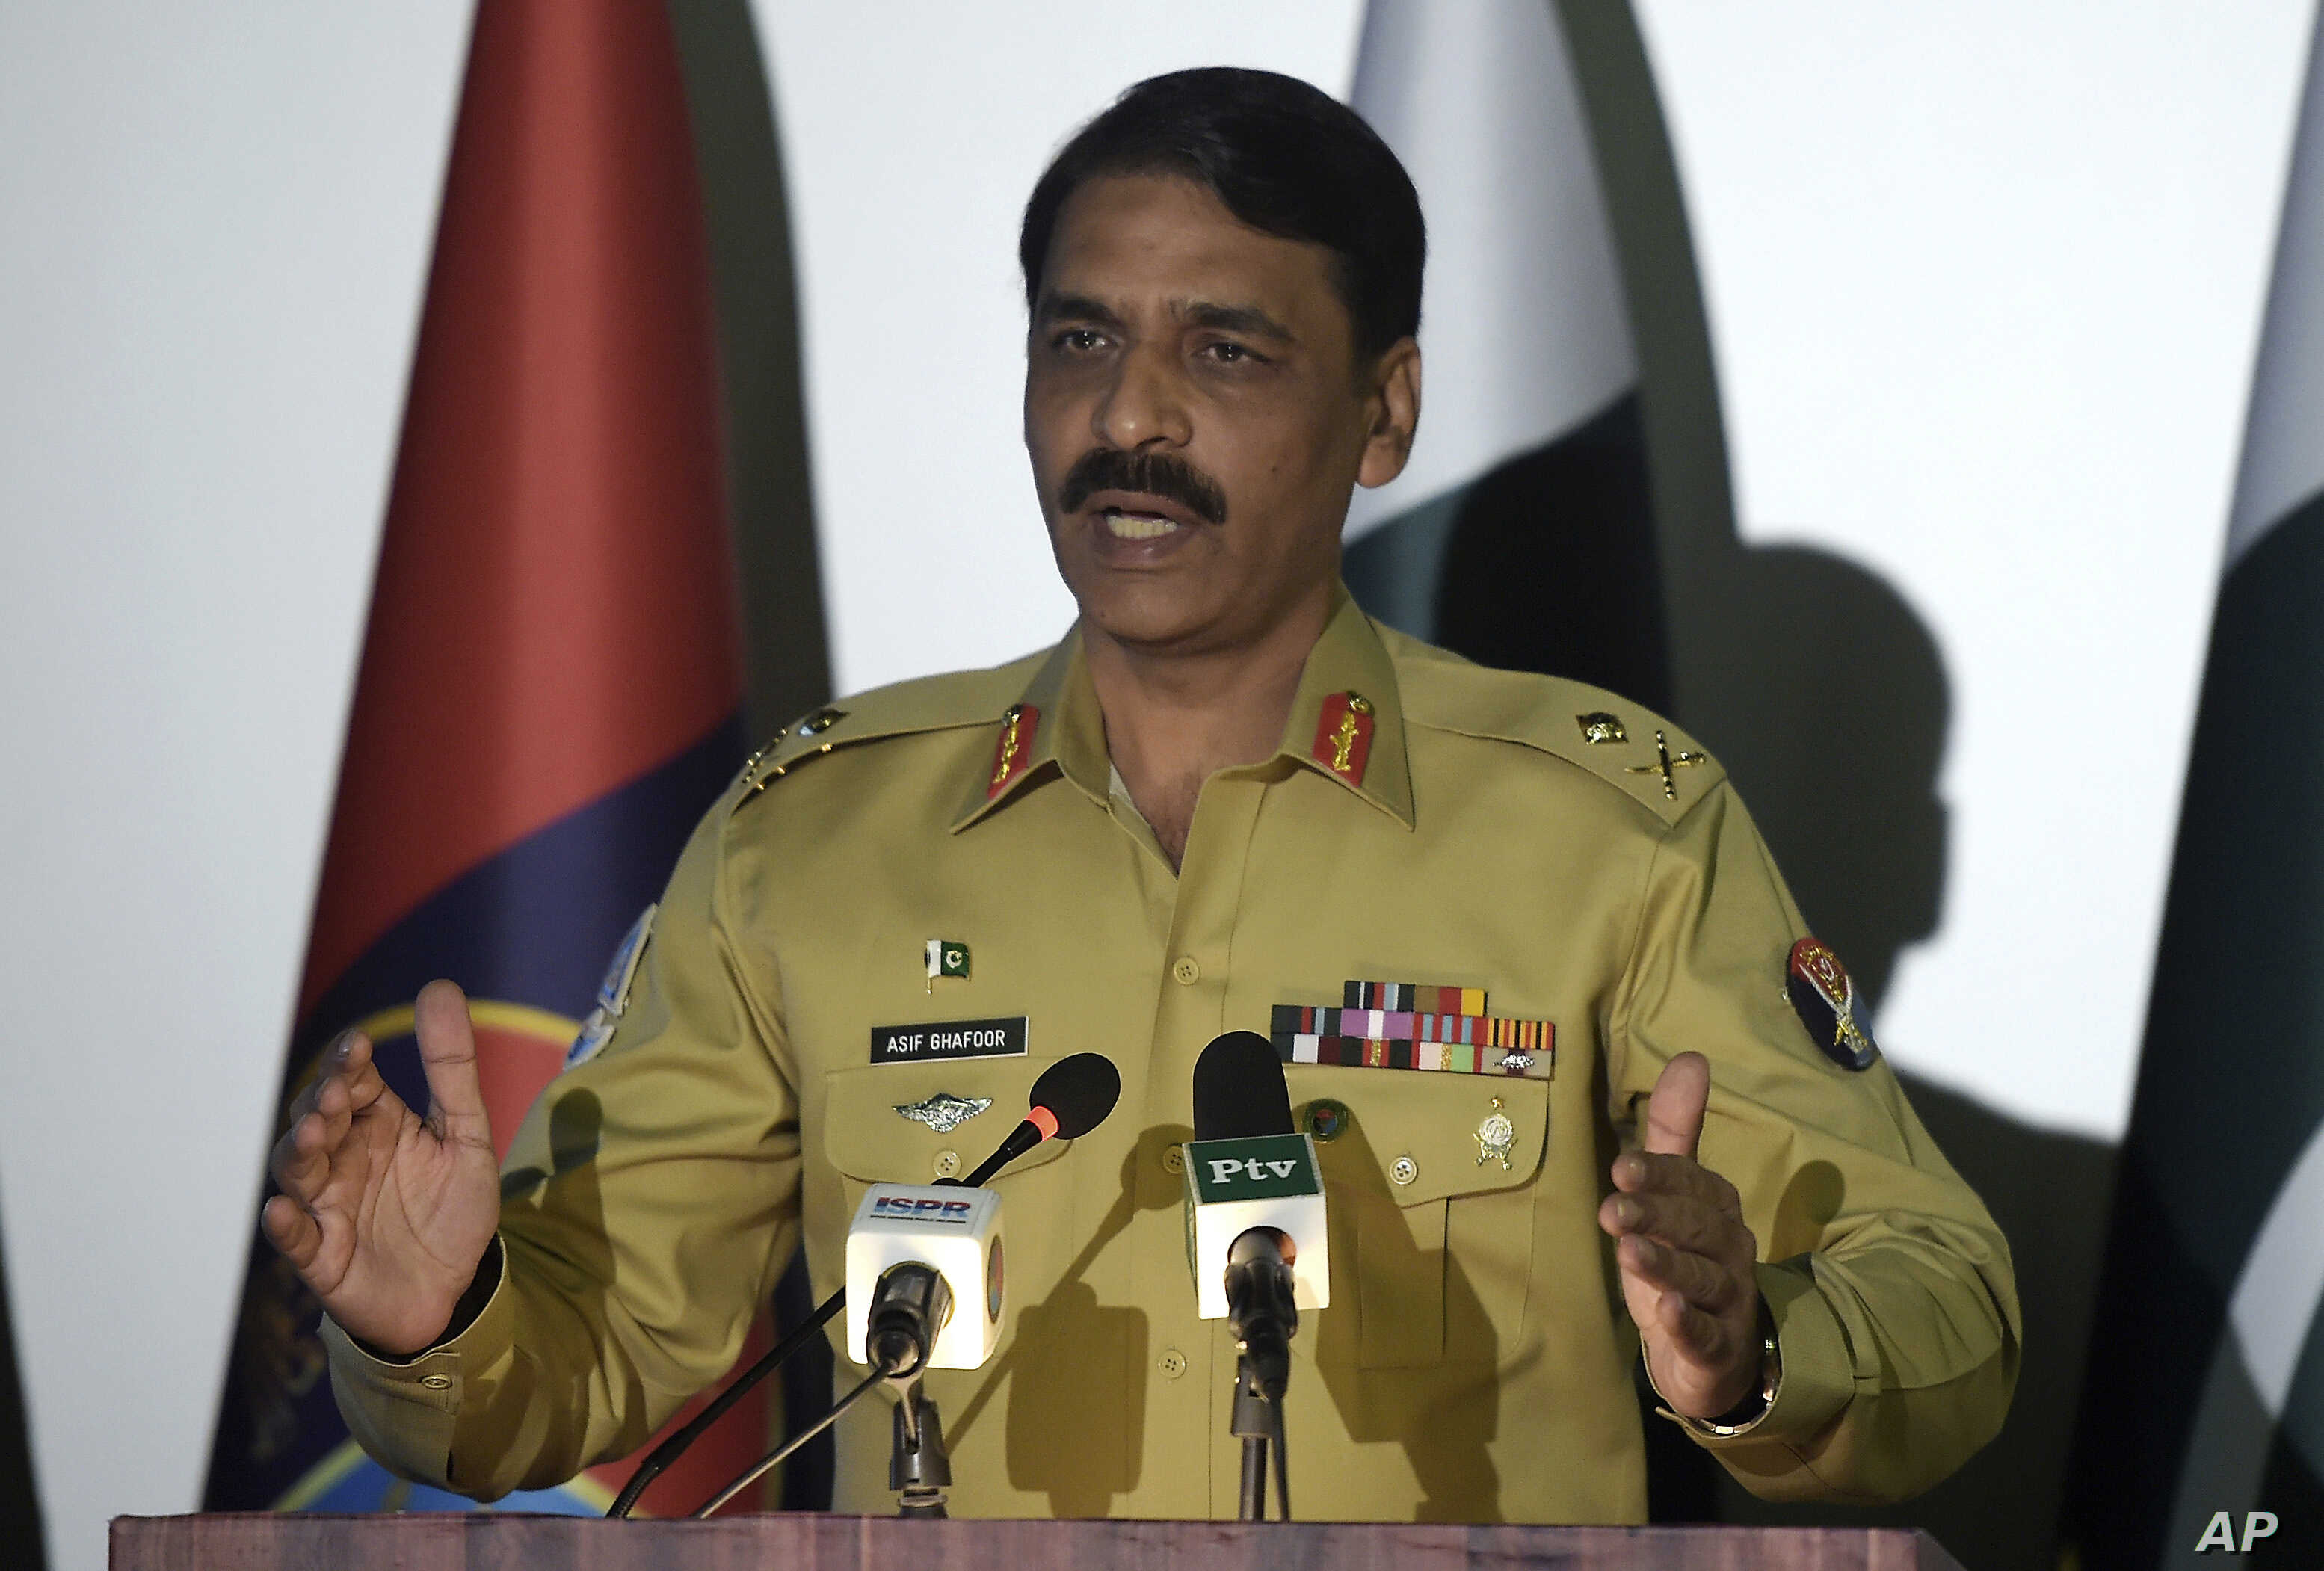 Two Pakistani Army Officers on Trial for Spying | Voice of